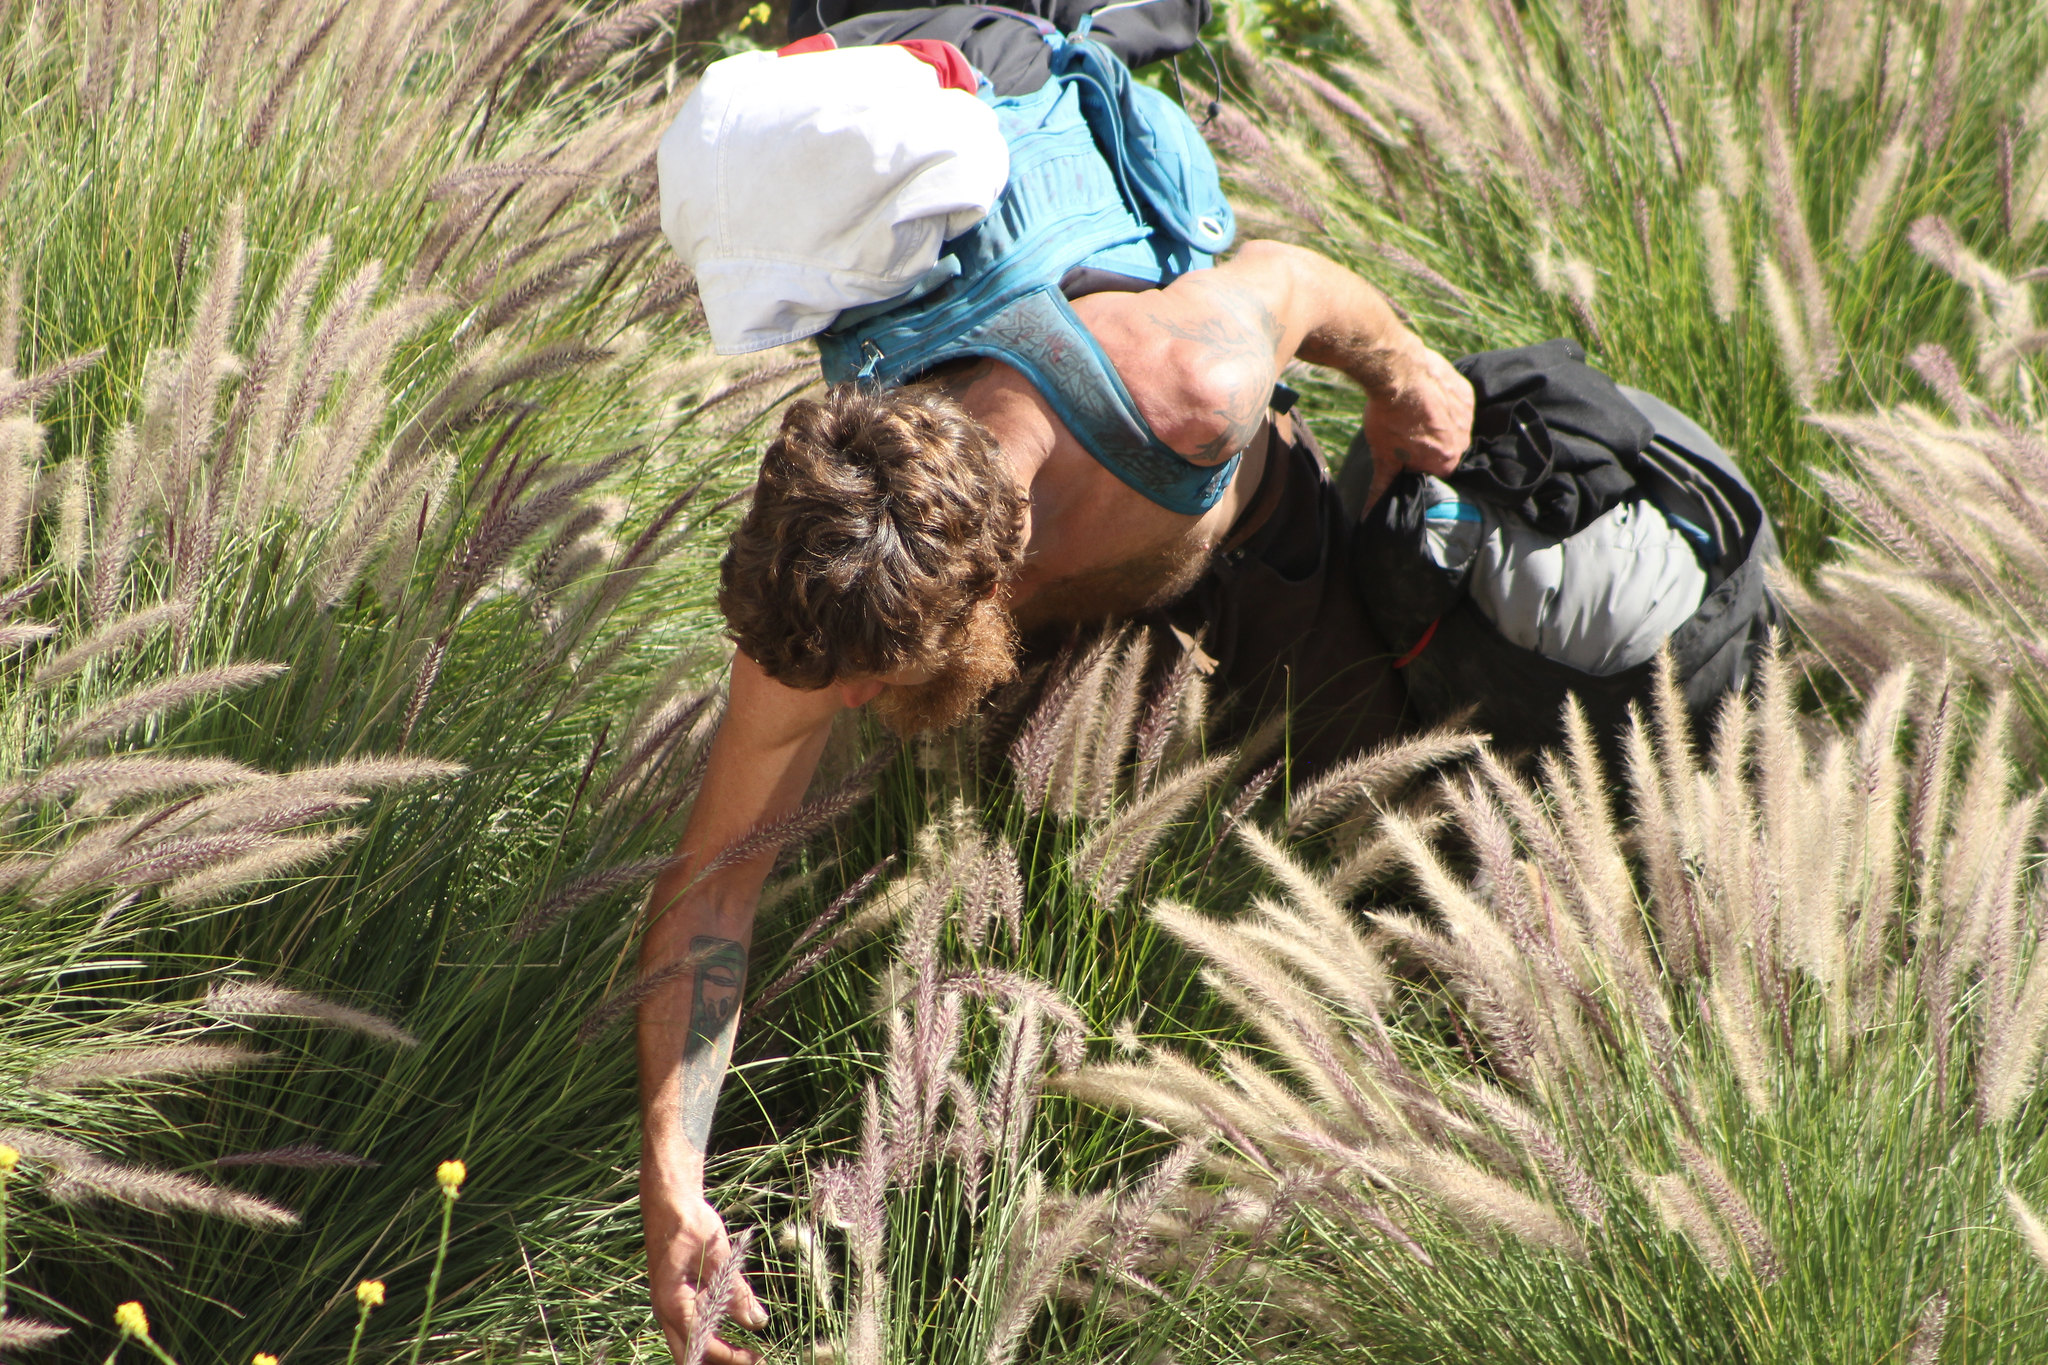 Foraging in a field while carrying bags of supplies: is this what survival looks like post-apocalypse?